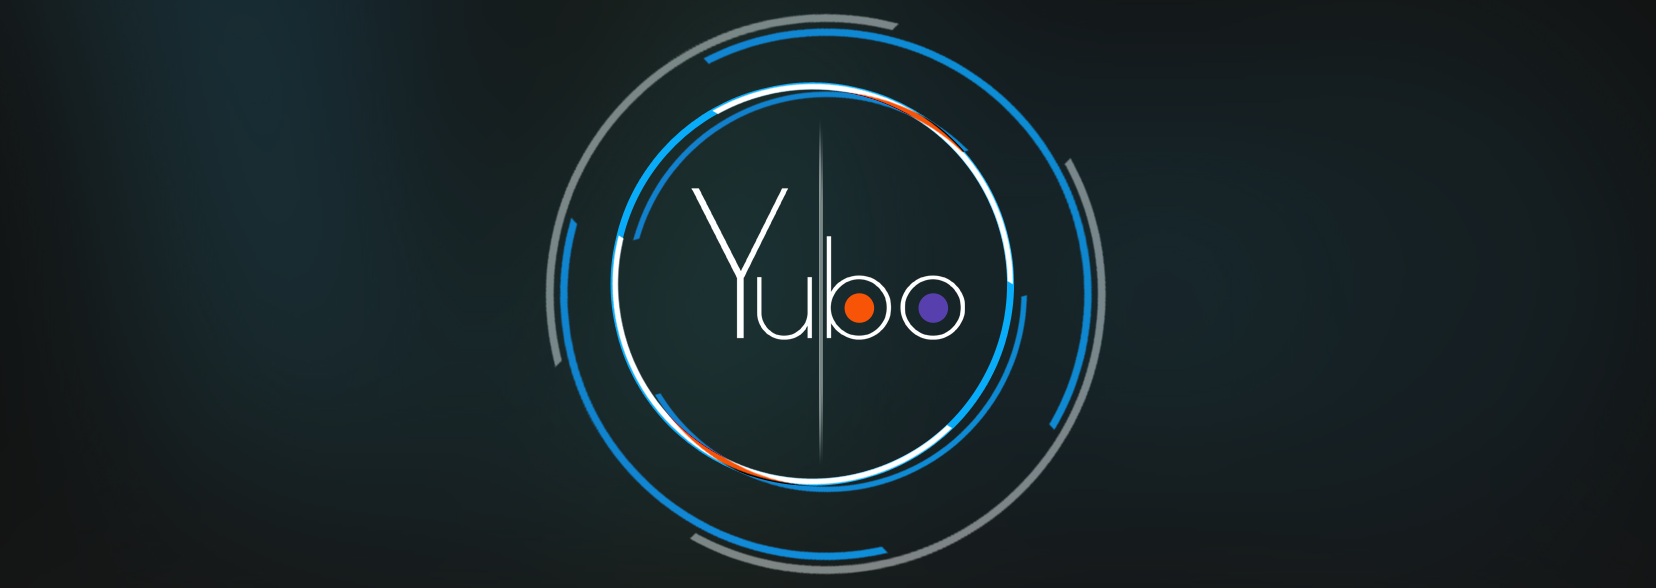 Yubo Welcome